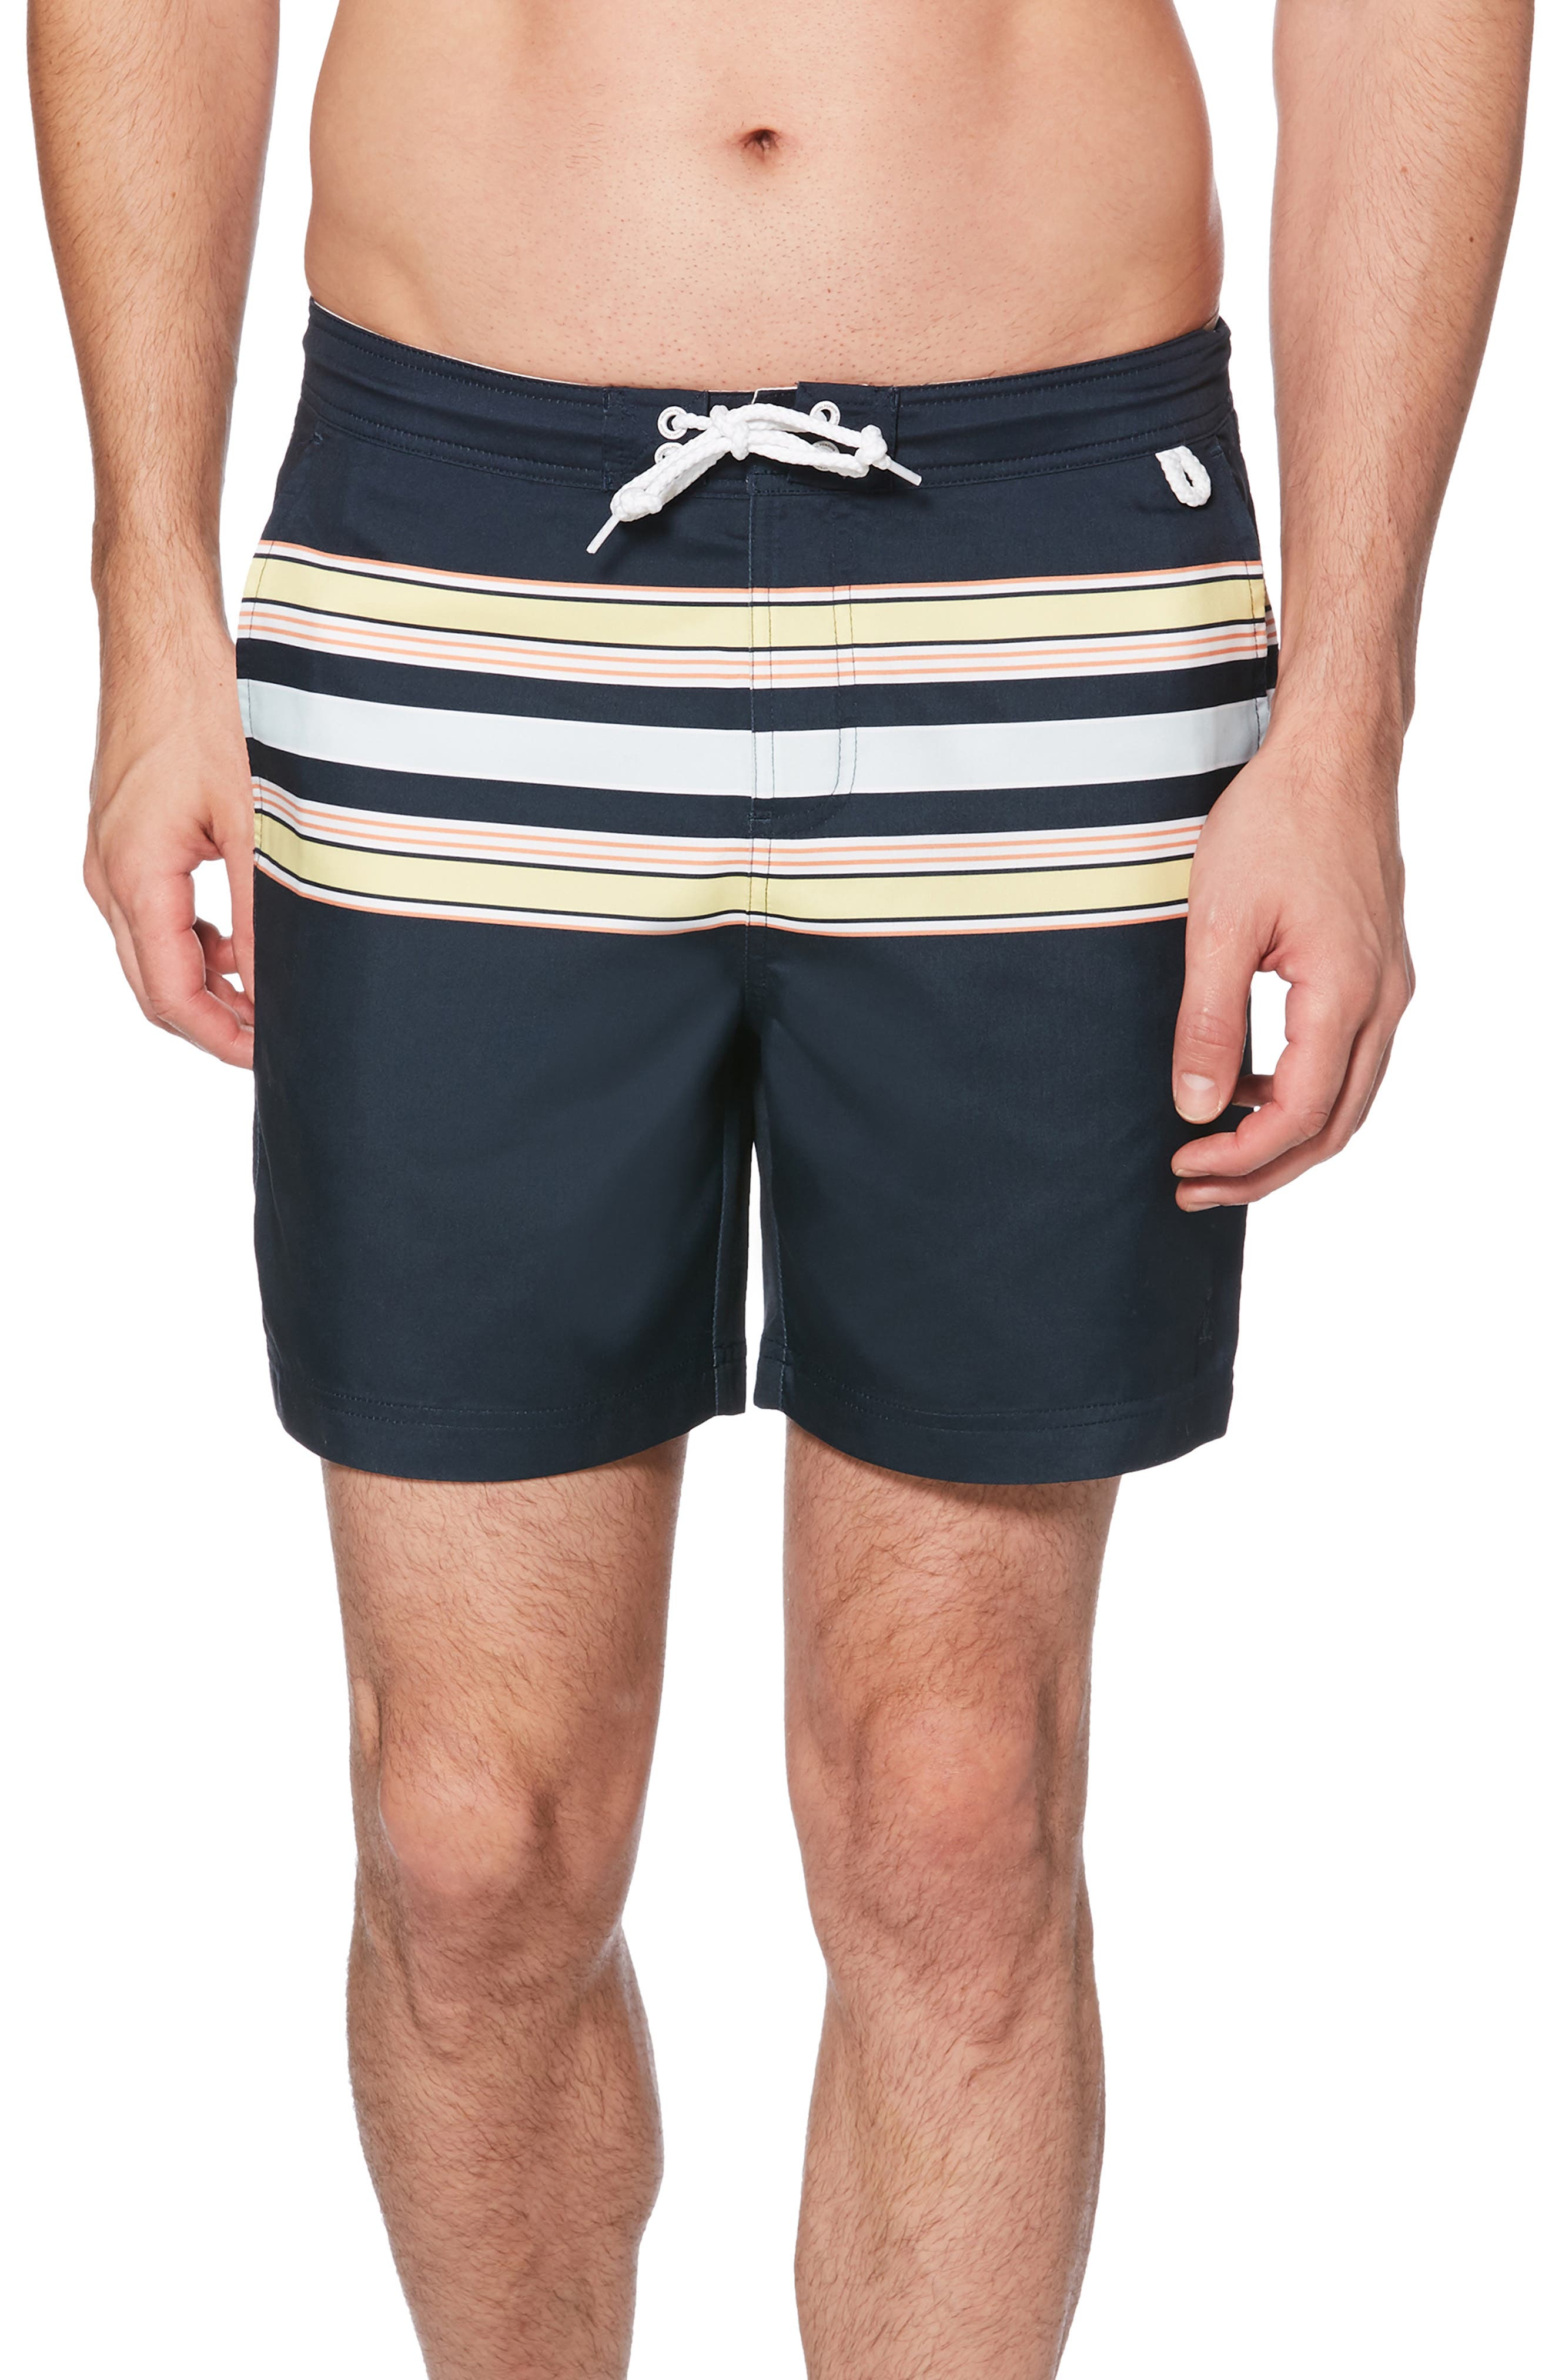 ORIGINAL PENGUIN, Retro Stripe Swim Trunks, Main thumbnail 1, color, DARK SAPPHIRE